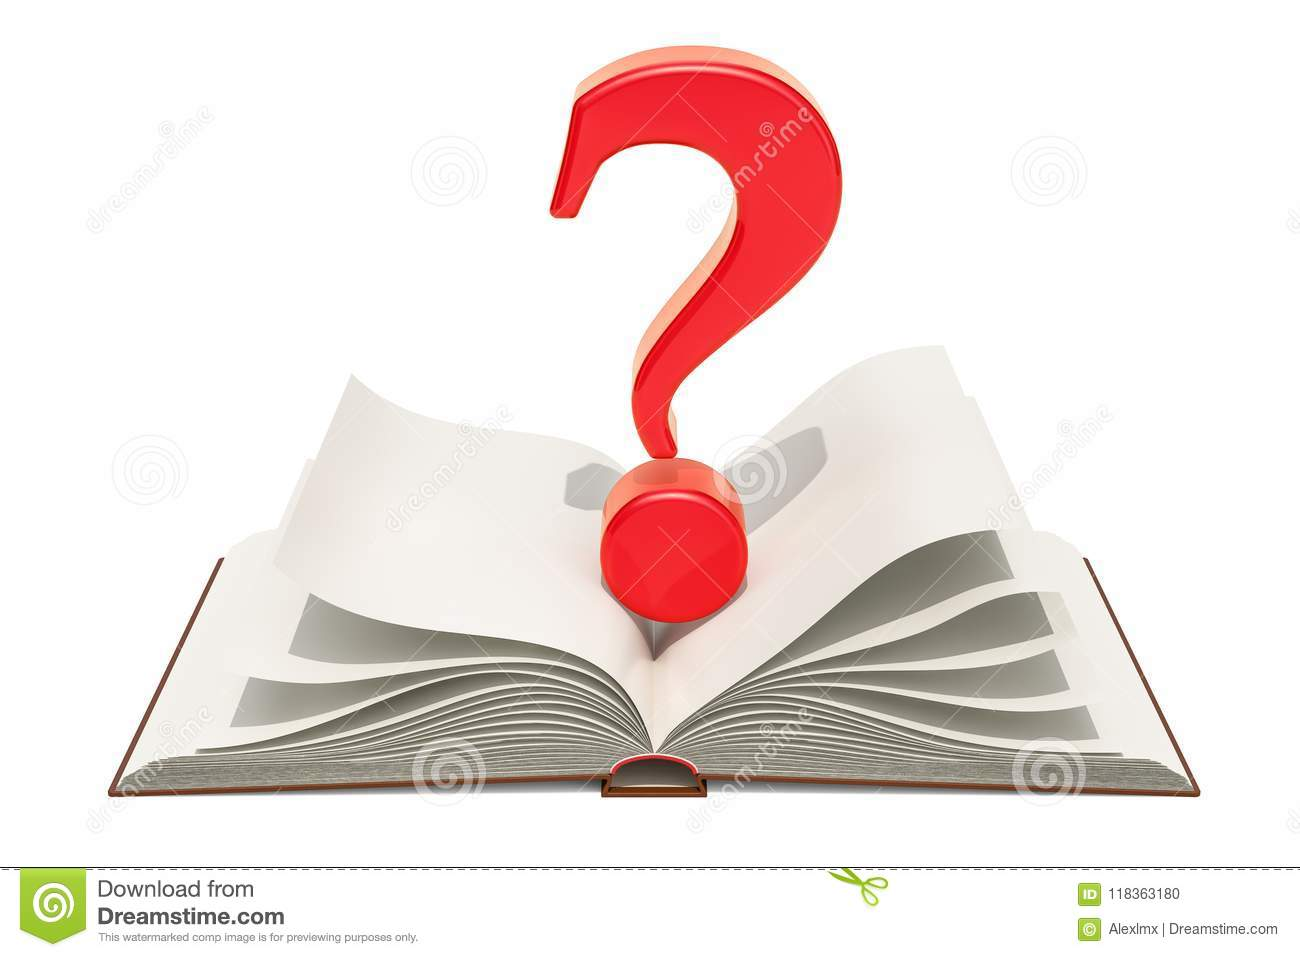 Opened blank book with question mark, 3D rendering